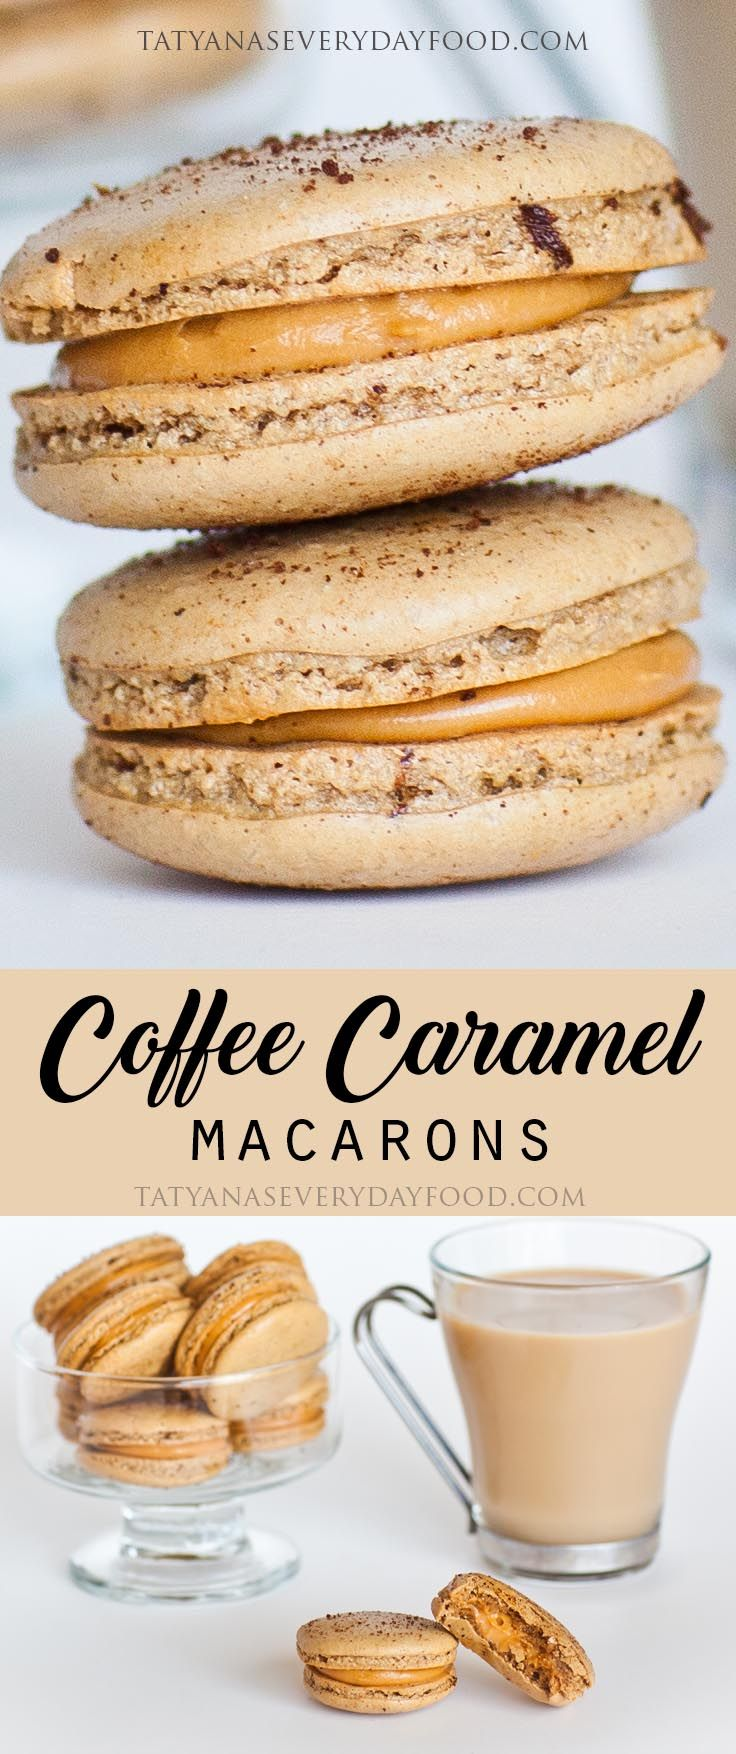 Coffee Macarons with Caramel Filling - Tatyanas Everyday Food